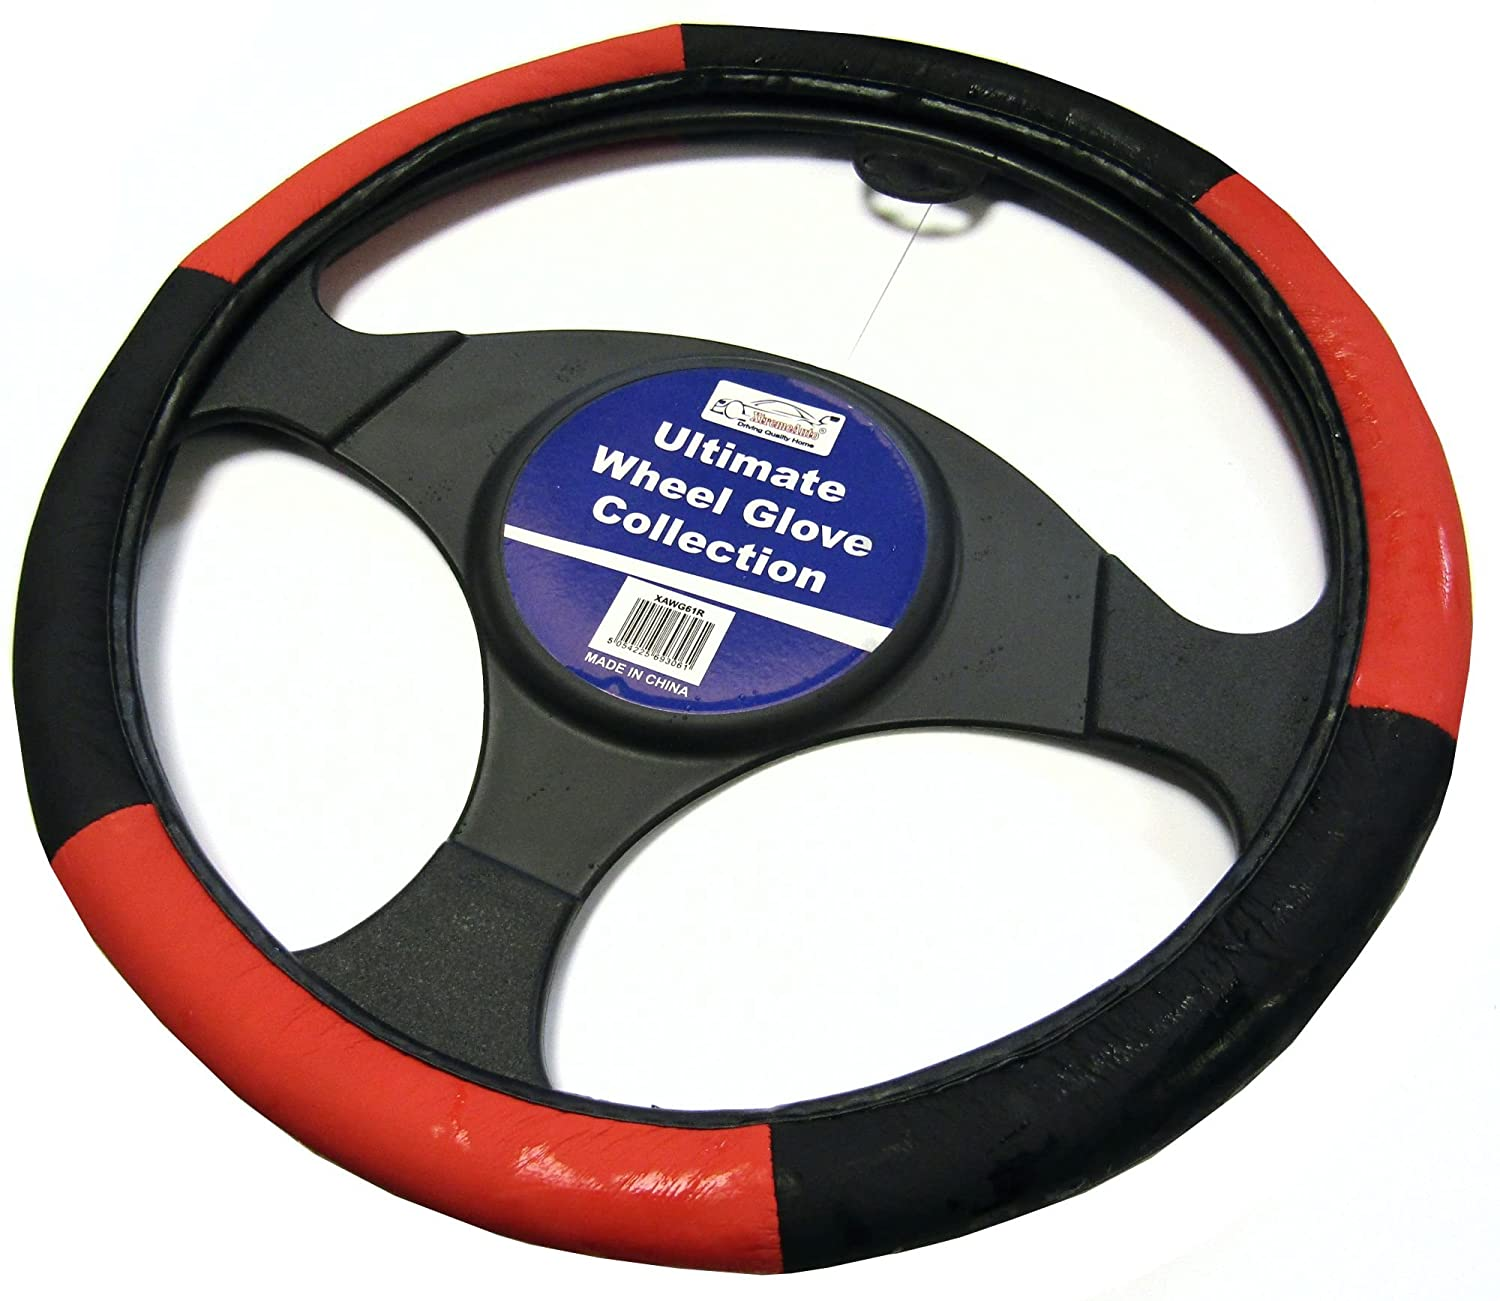 XtremeAuto® Black And Red Ultimate Steering Wheel Cover Glove - XAWG61R XtremeAuto®